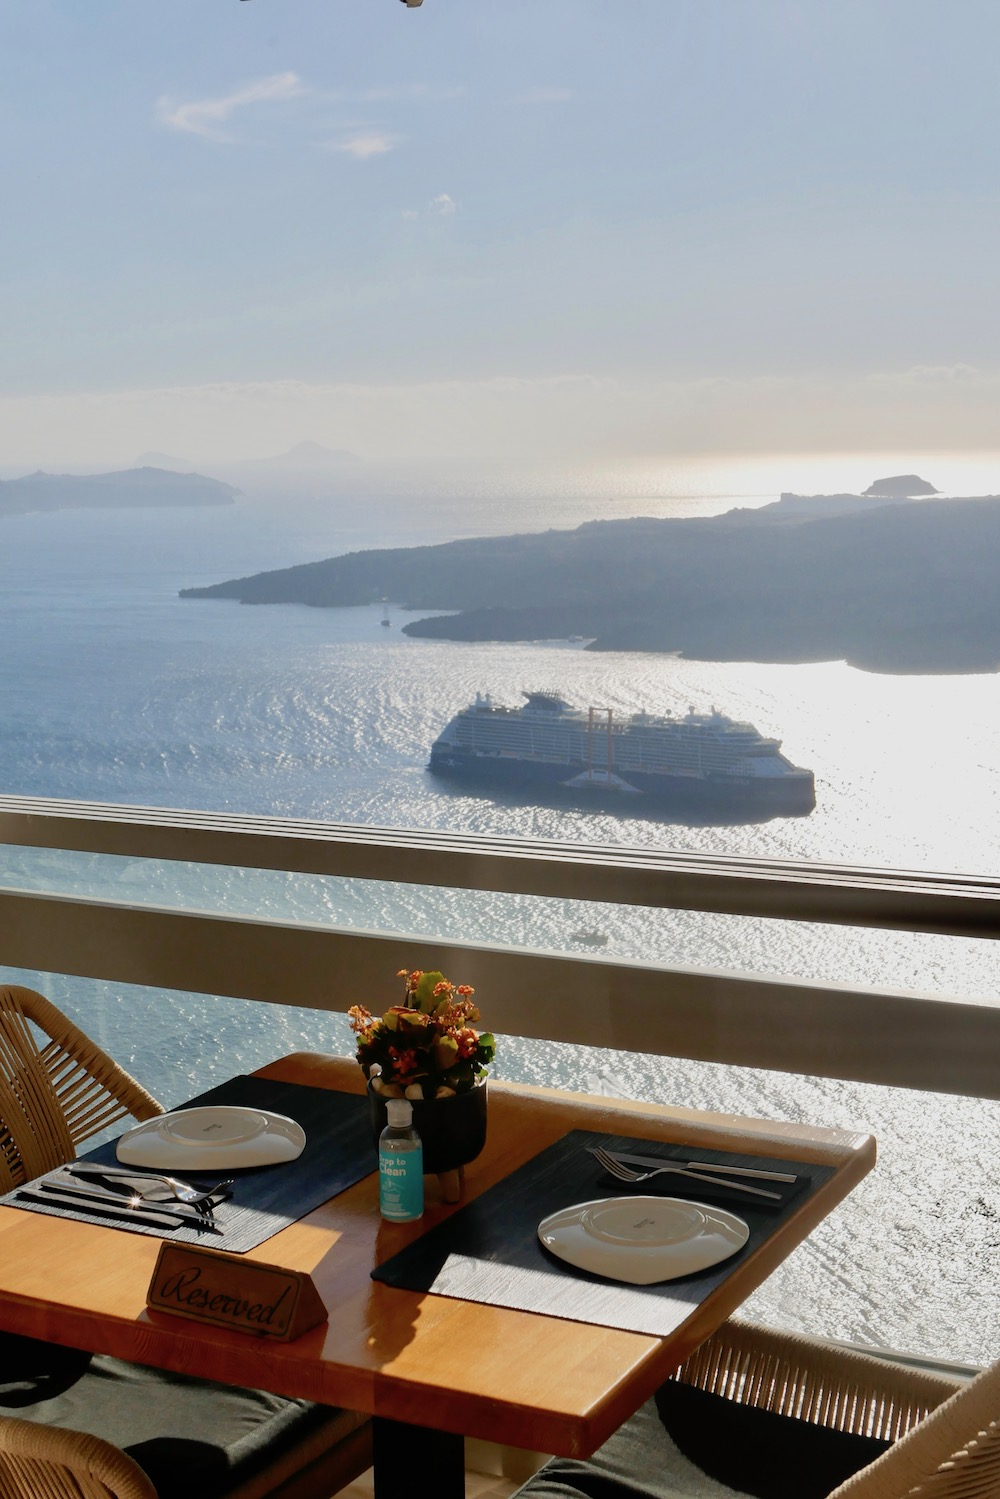 Visiting Oia Greece from a cruise ship